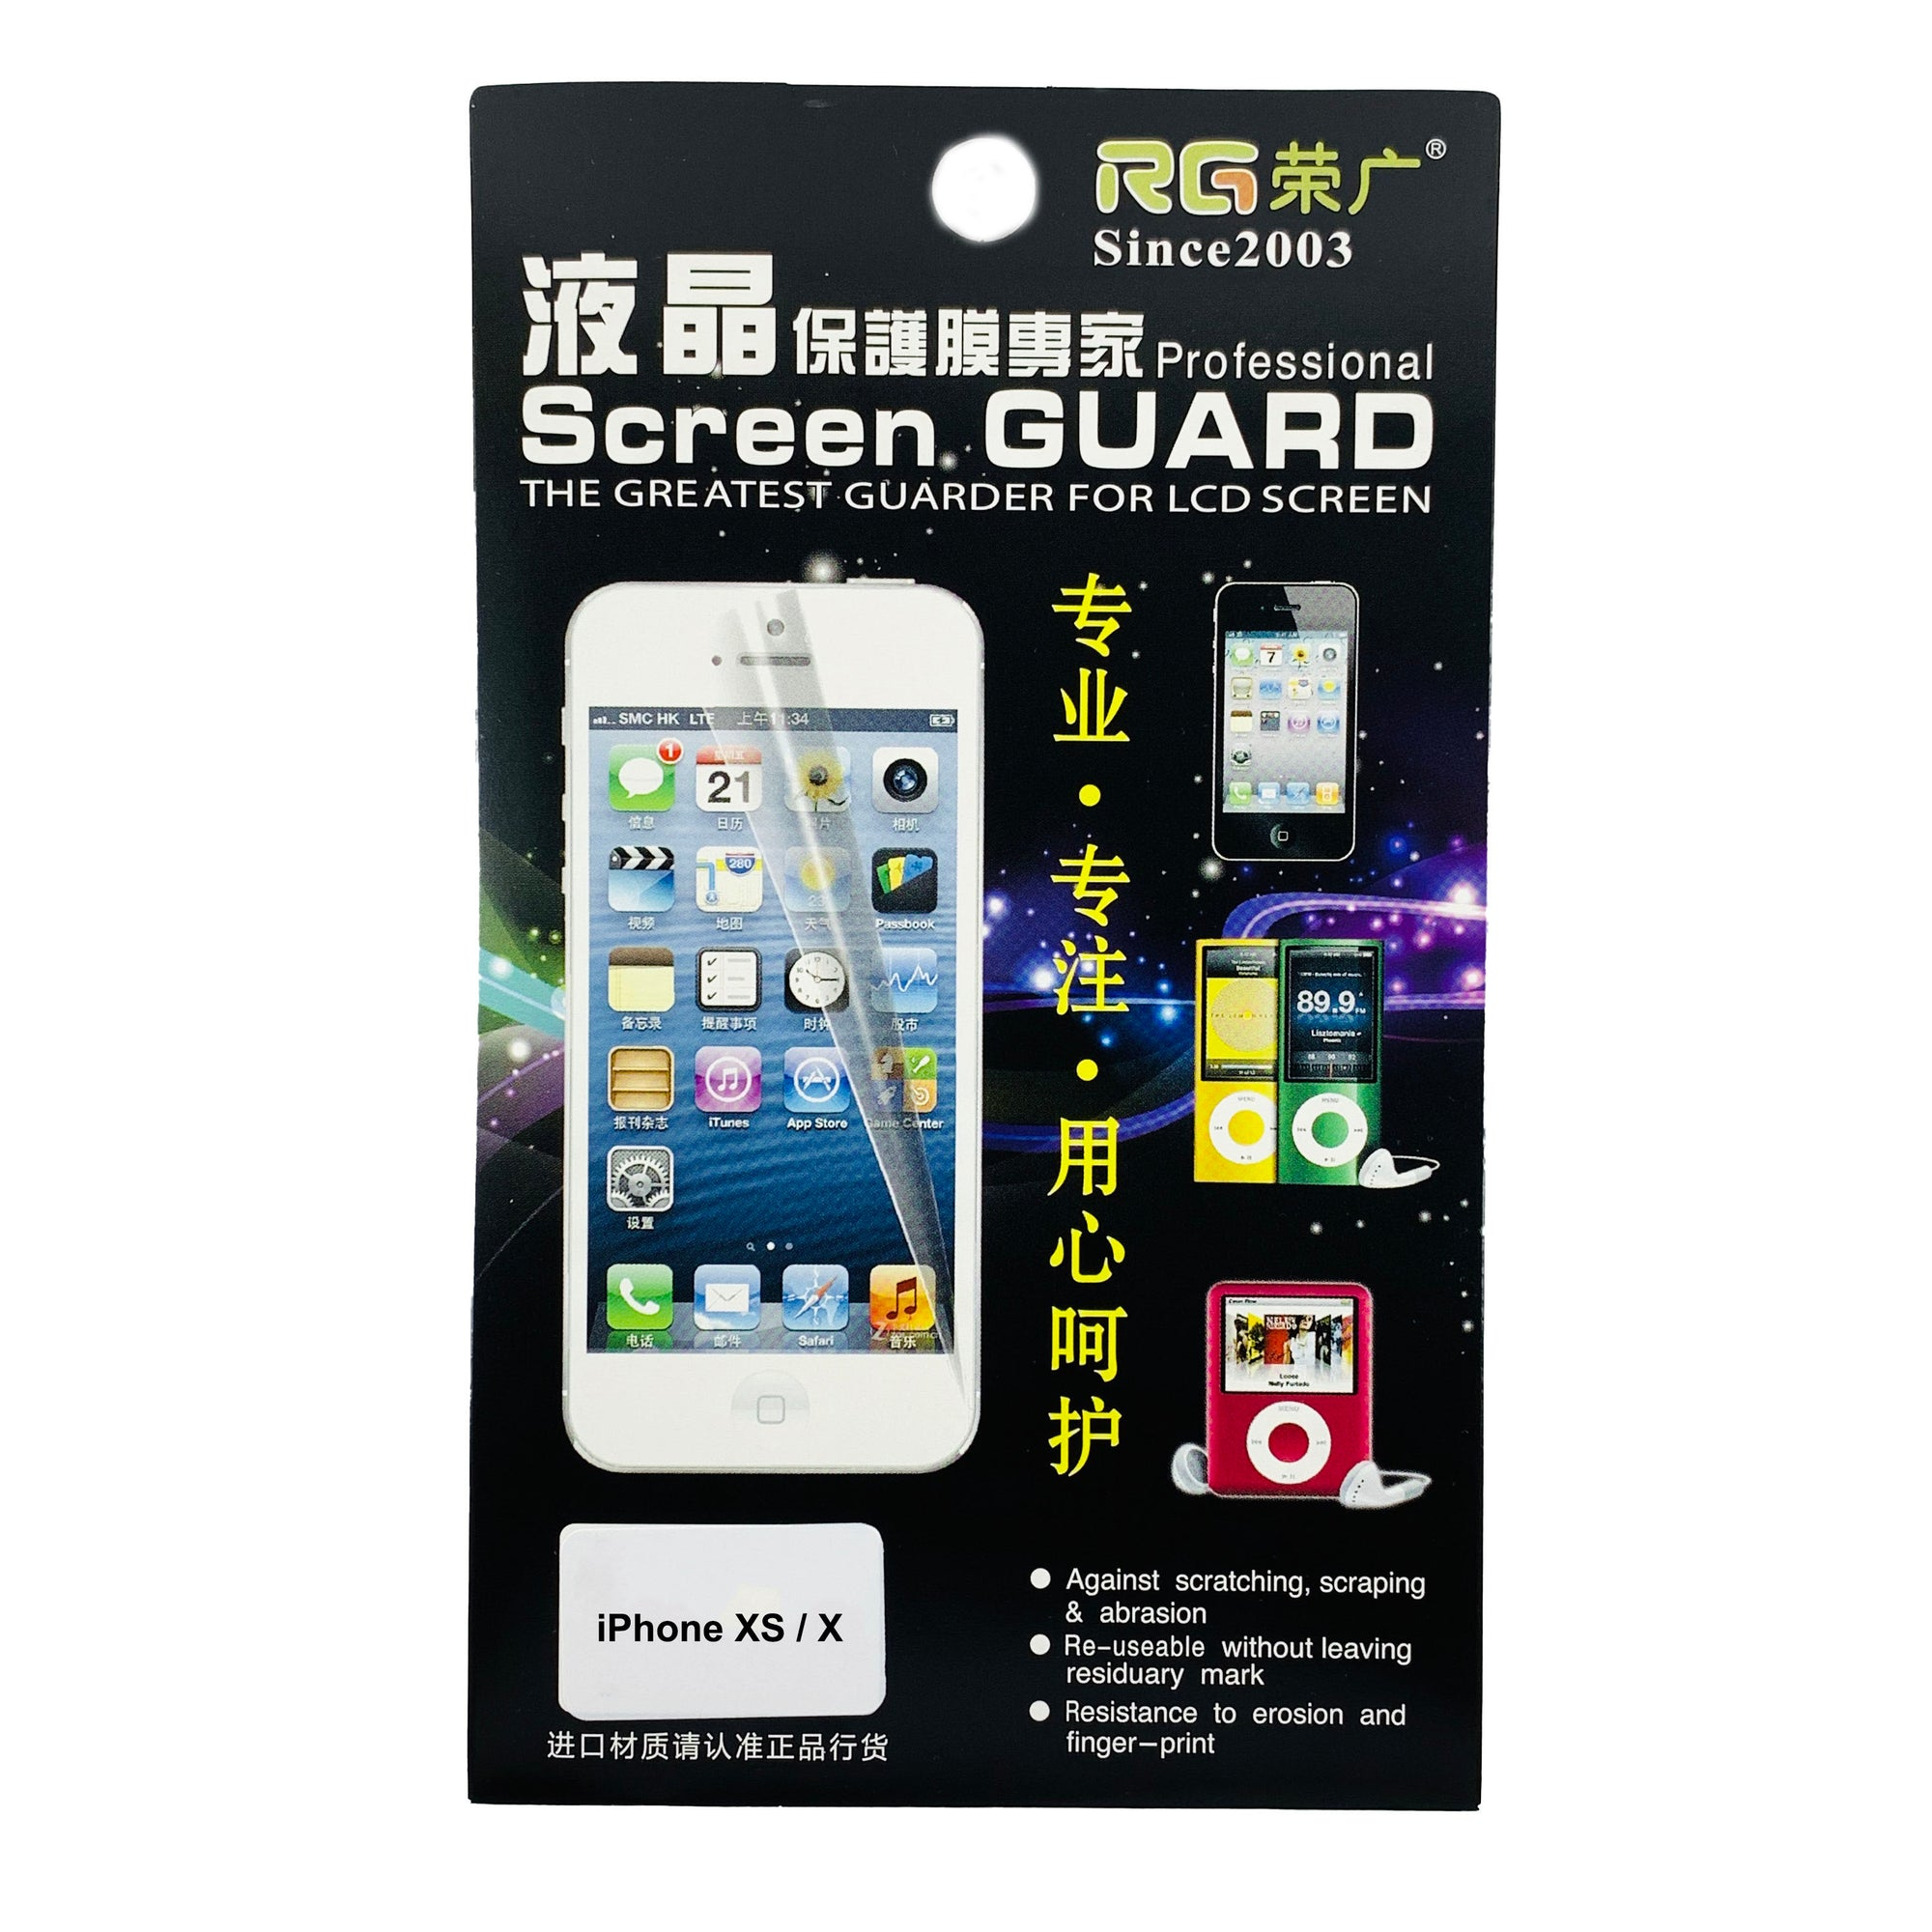 RG Professional Soft Film Screen Protector for iPhone XS / X (Clear) Front and Rear